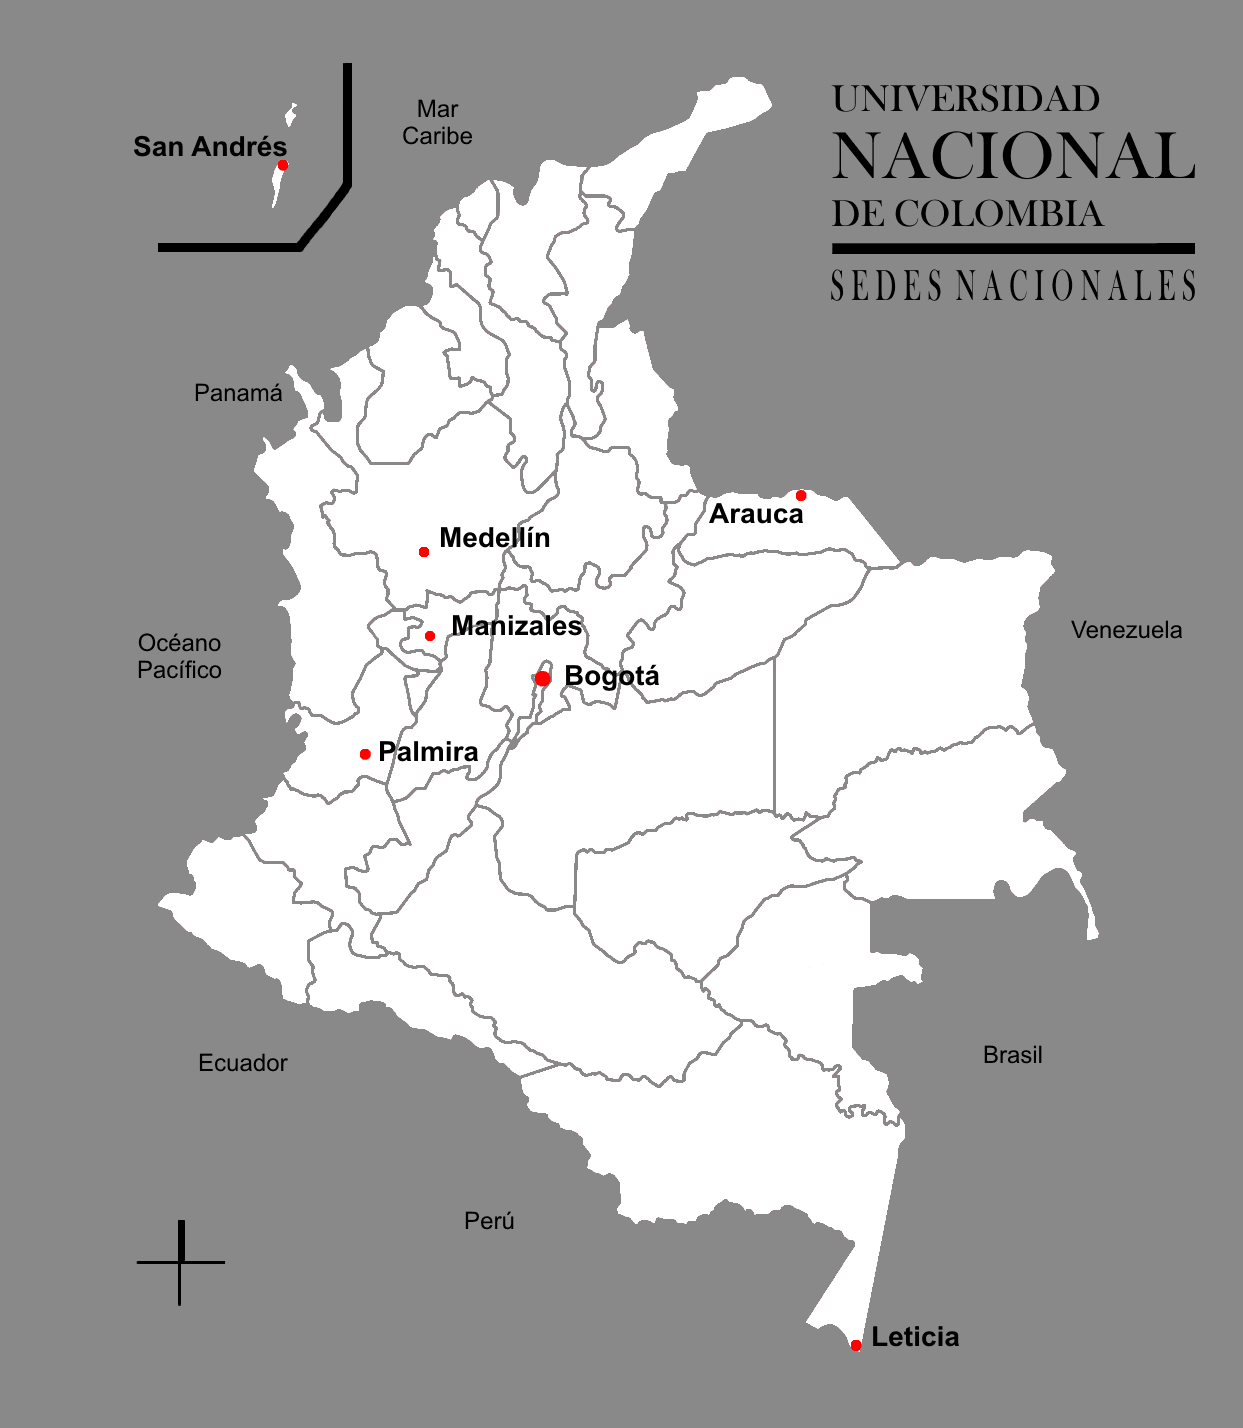 Unal Colombia large map